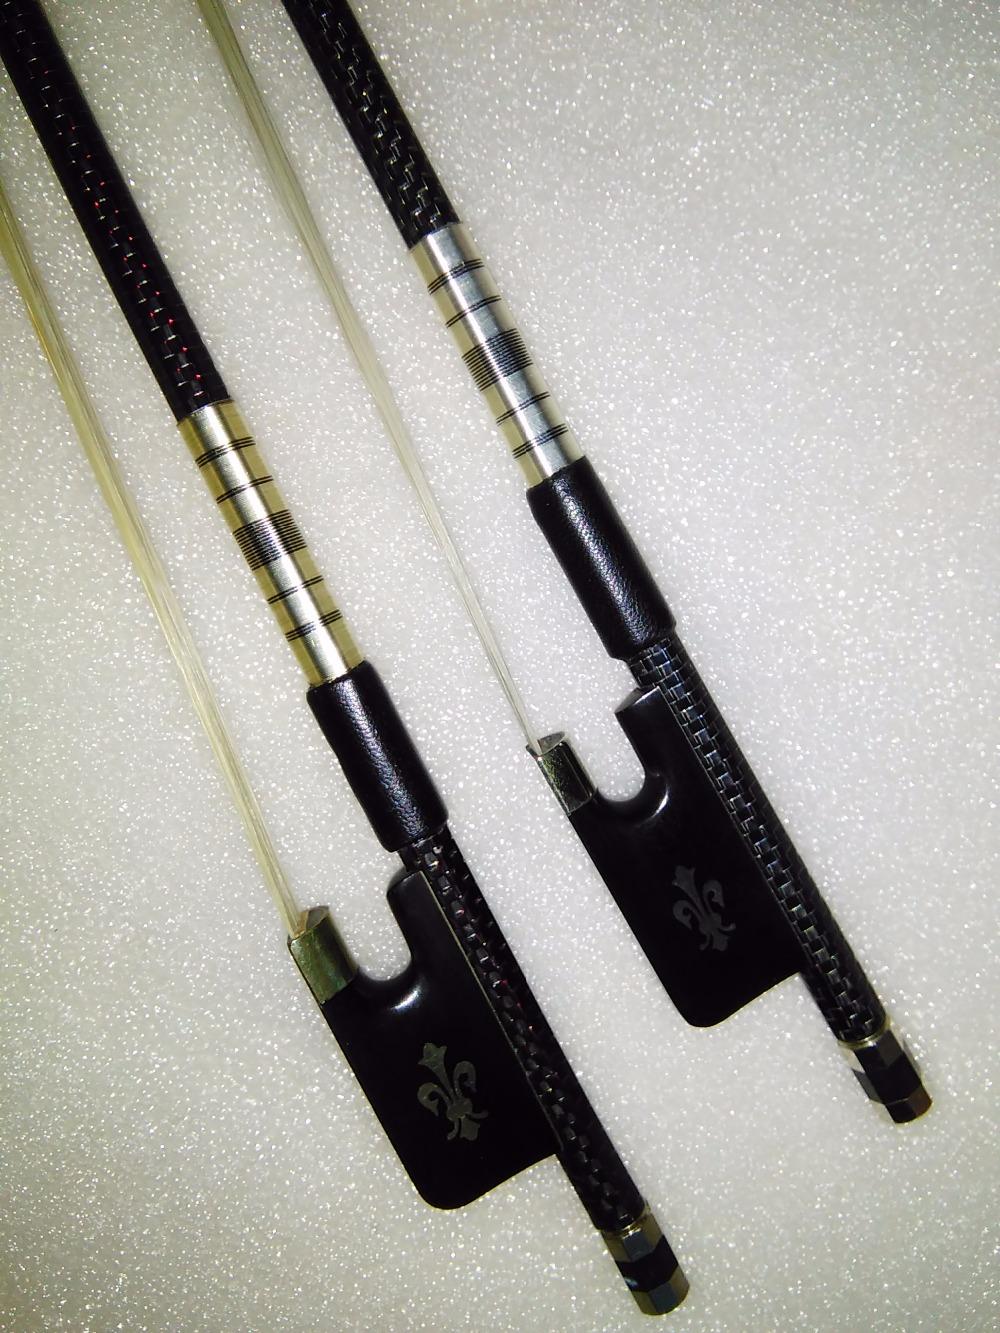 2 PCs Quality Cello bow carbon fiber bow stick ebony frog one silver wire inlay and one with red wire inlay white bow hair 2 pcs quality cello bow carbon fiber bow stick ebony frog one silver wire inlay and one with red wire inlay white bow hair